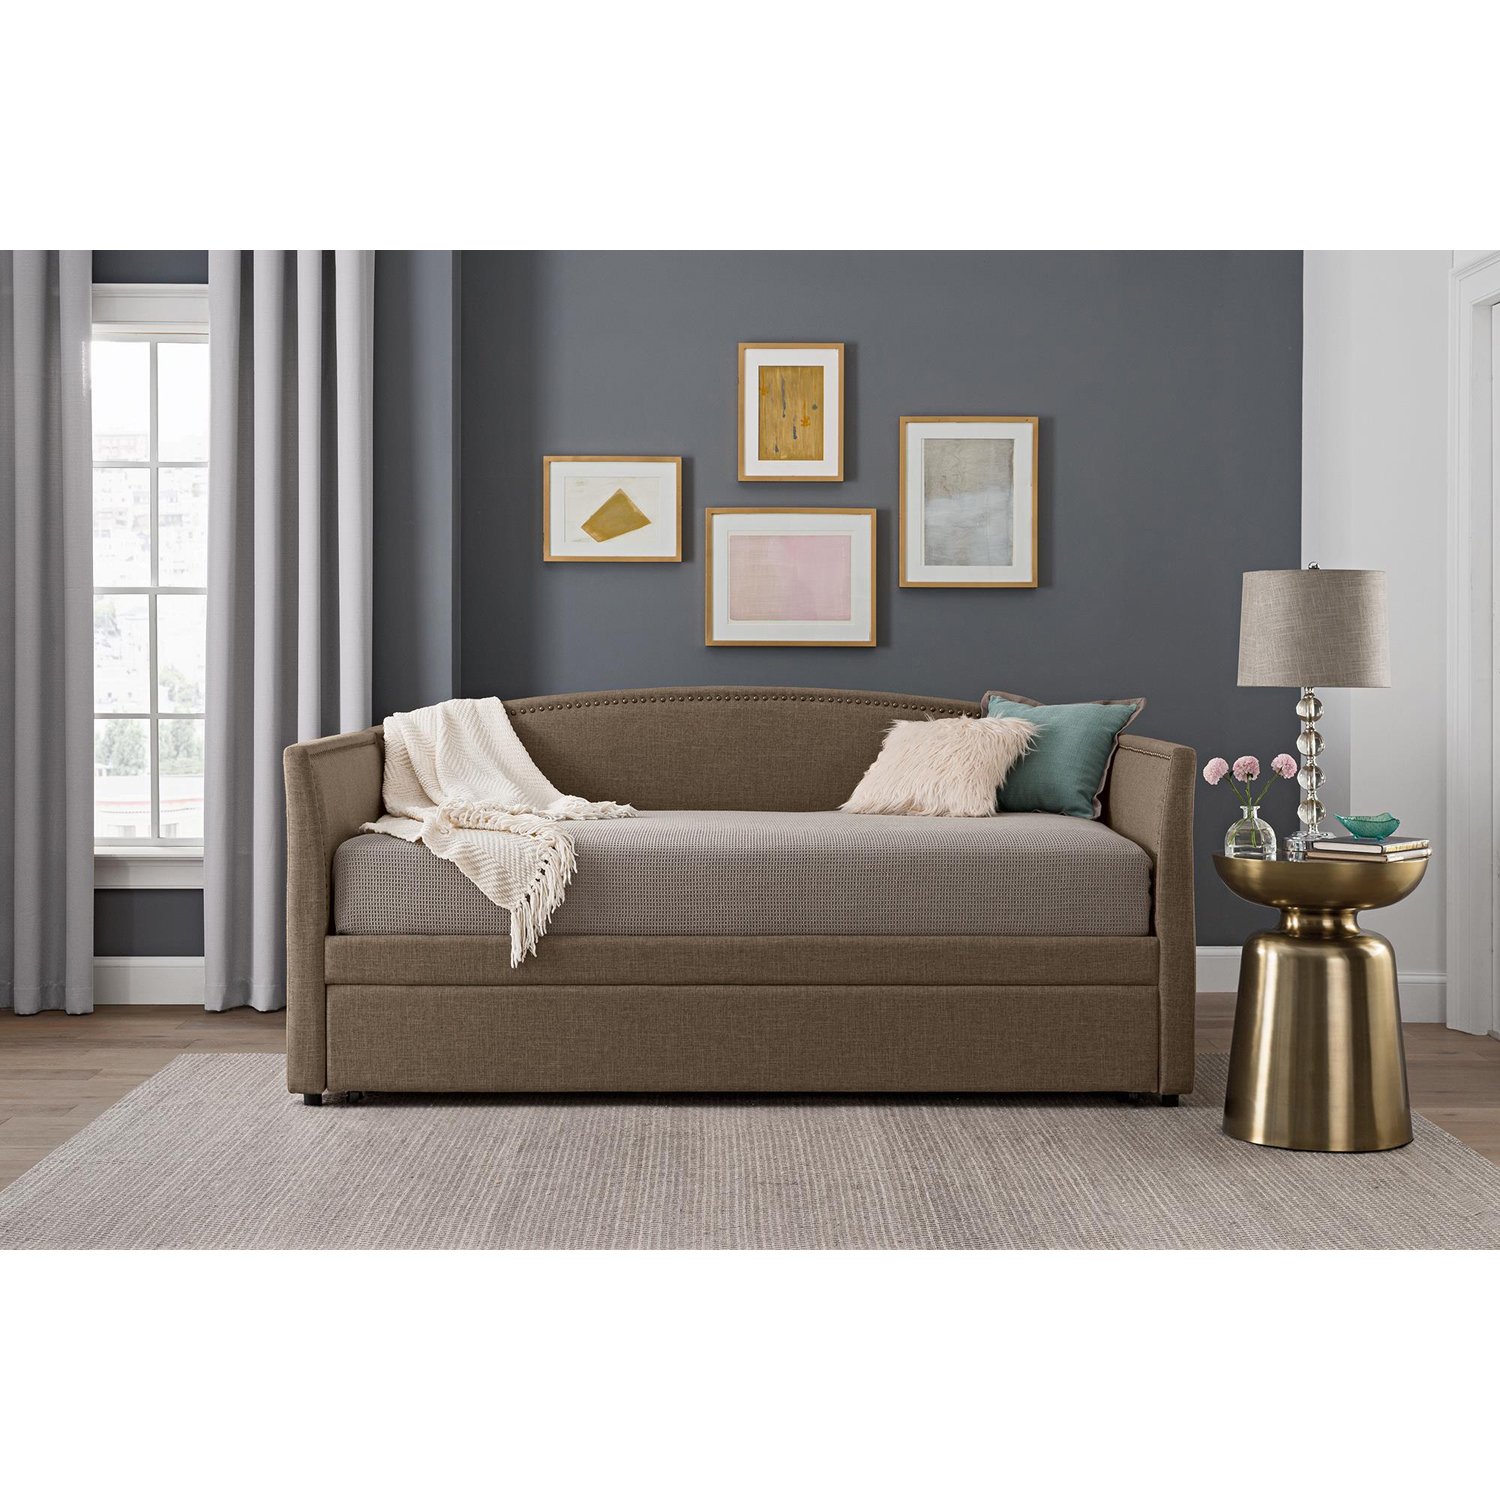 Better Homes and Gardens Grayson Linen Day Bed and Trundle Twin, Multiple Colors by Dorel Home Products